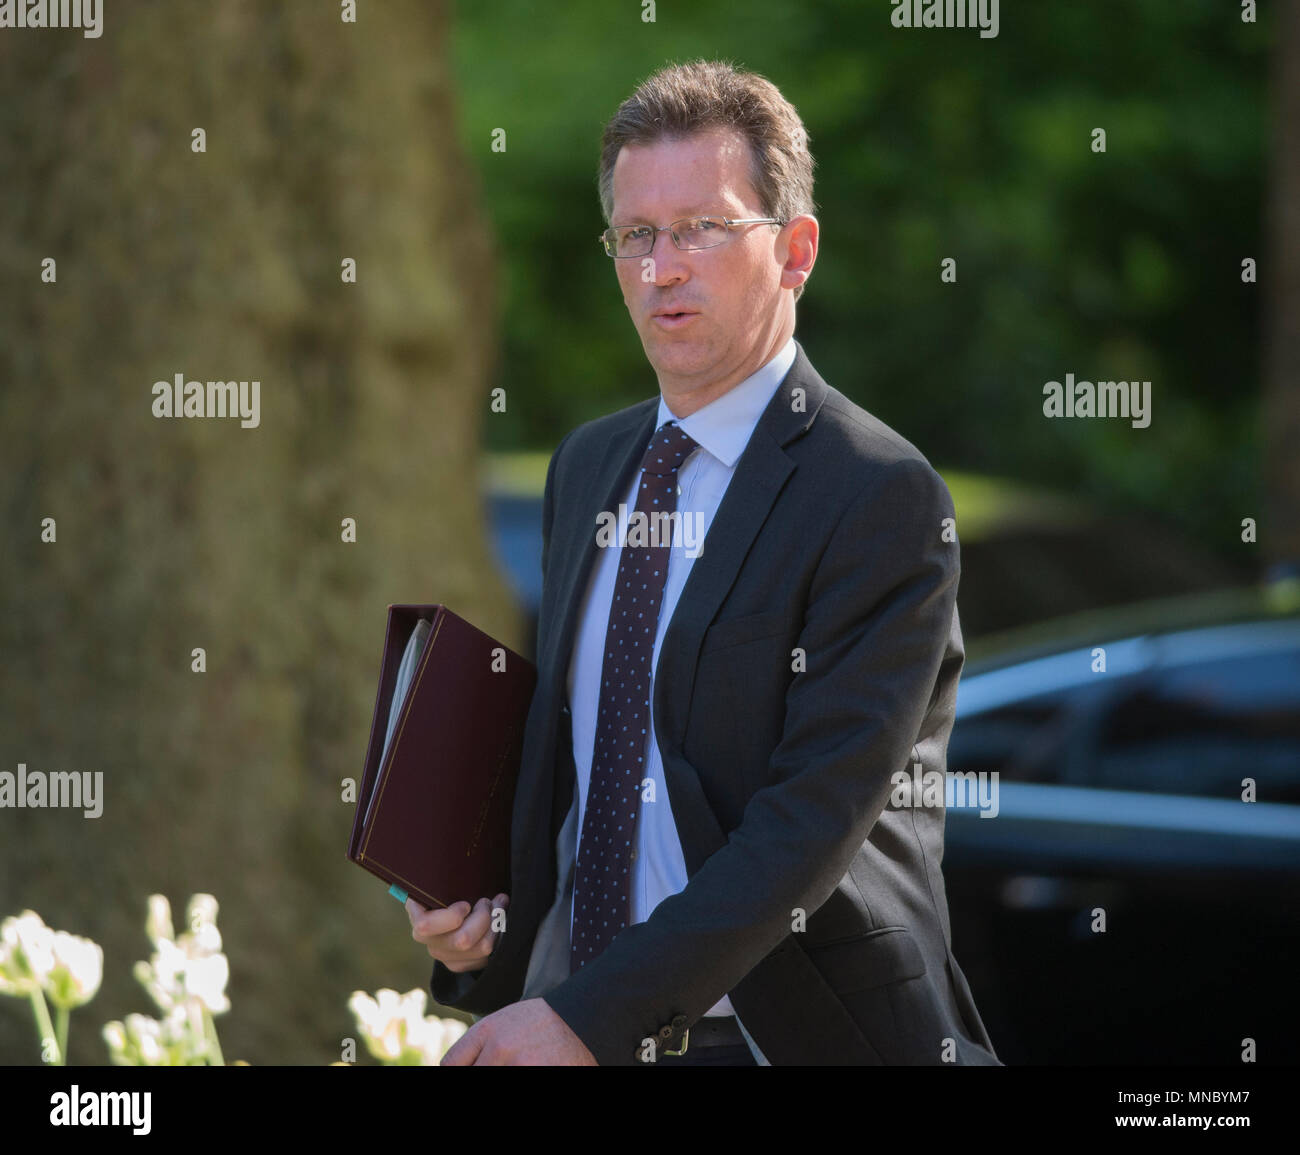 London, UK. 15 May 2018. Jeremy Wright QC, Attorney General in Downing Street for weekly Cabinet meeting. - Stock Image